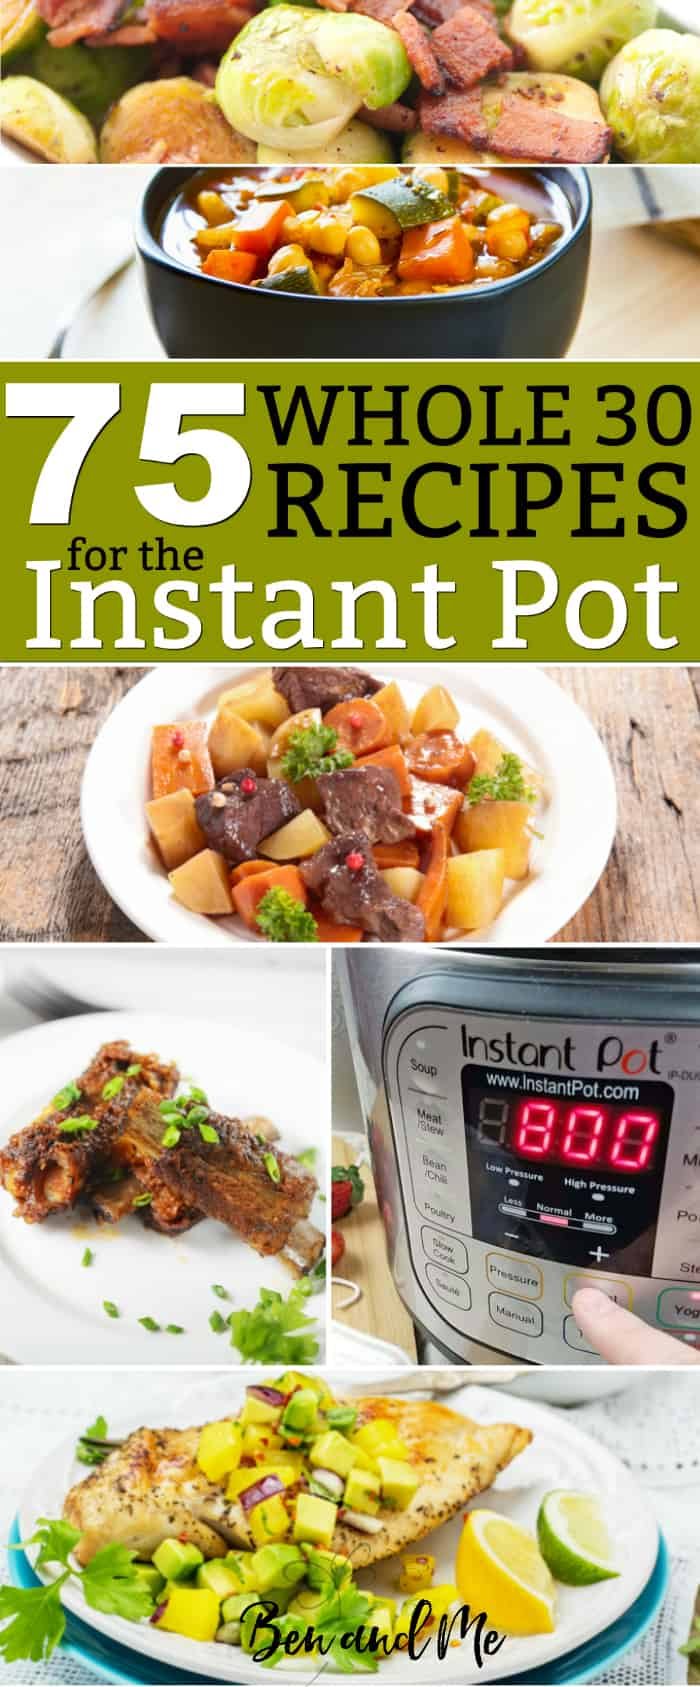 Moms with families on the go love healthy recipes and using Instant Pot! For families eating the Whole30 diet, the Instant Pot is a dream. Here, you'll find a collection of 75 Whole30 recipes for the Instant Pot. #instantpot #instantpotrecipes #recipe #recipes #whole30 #whole30diet #whole30recipes #health #healthy #healthyrecipes #healthyfood